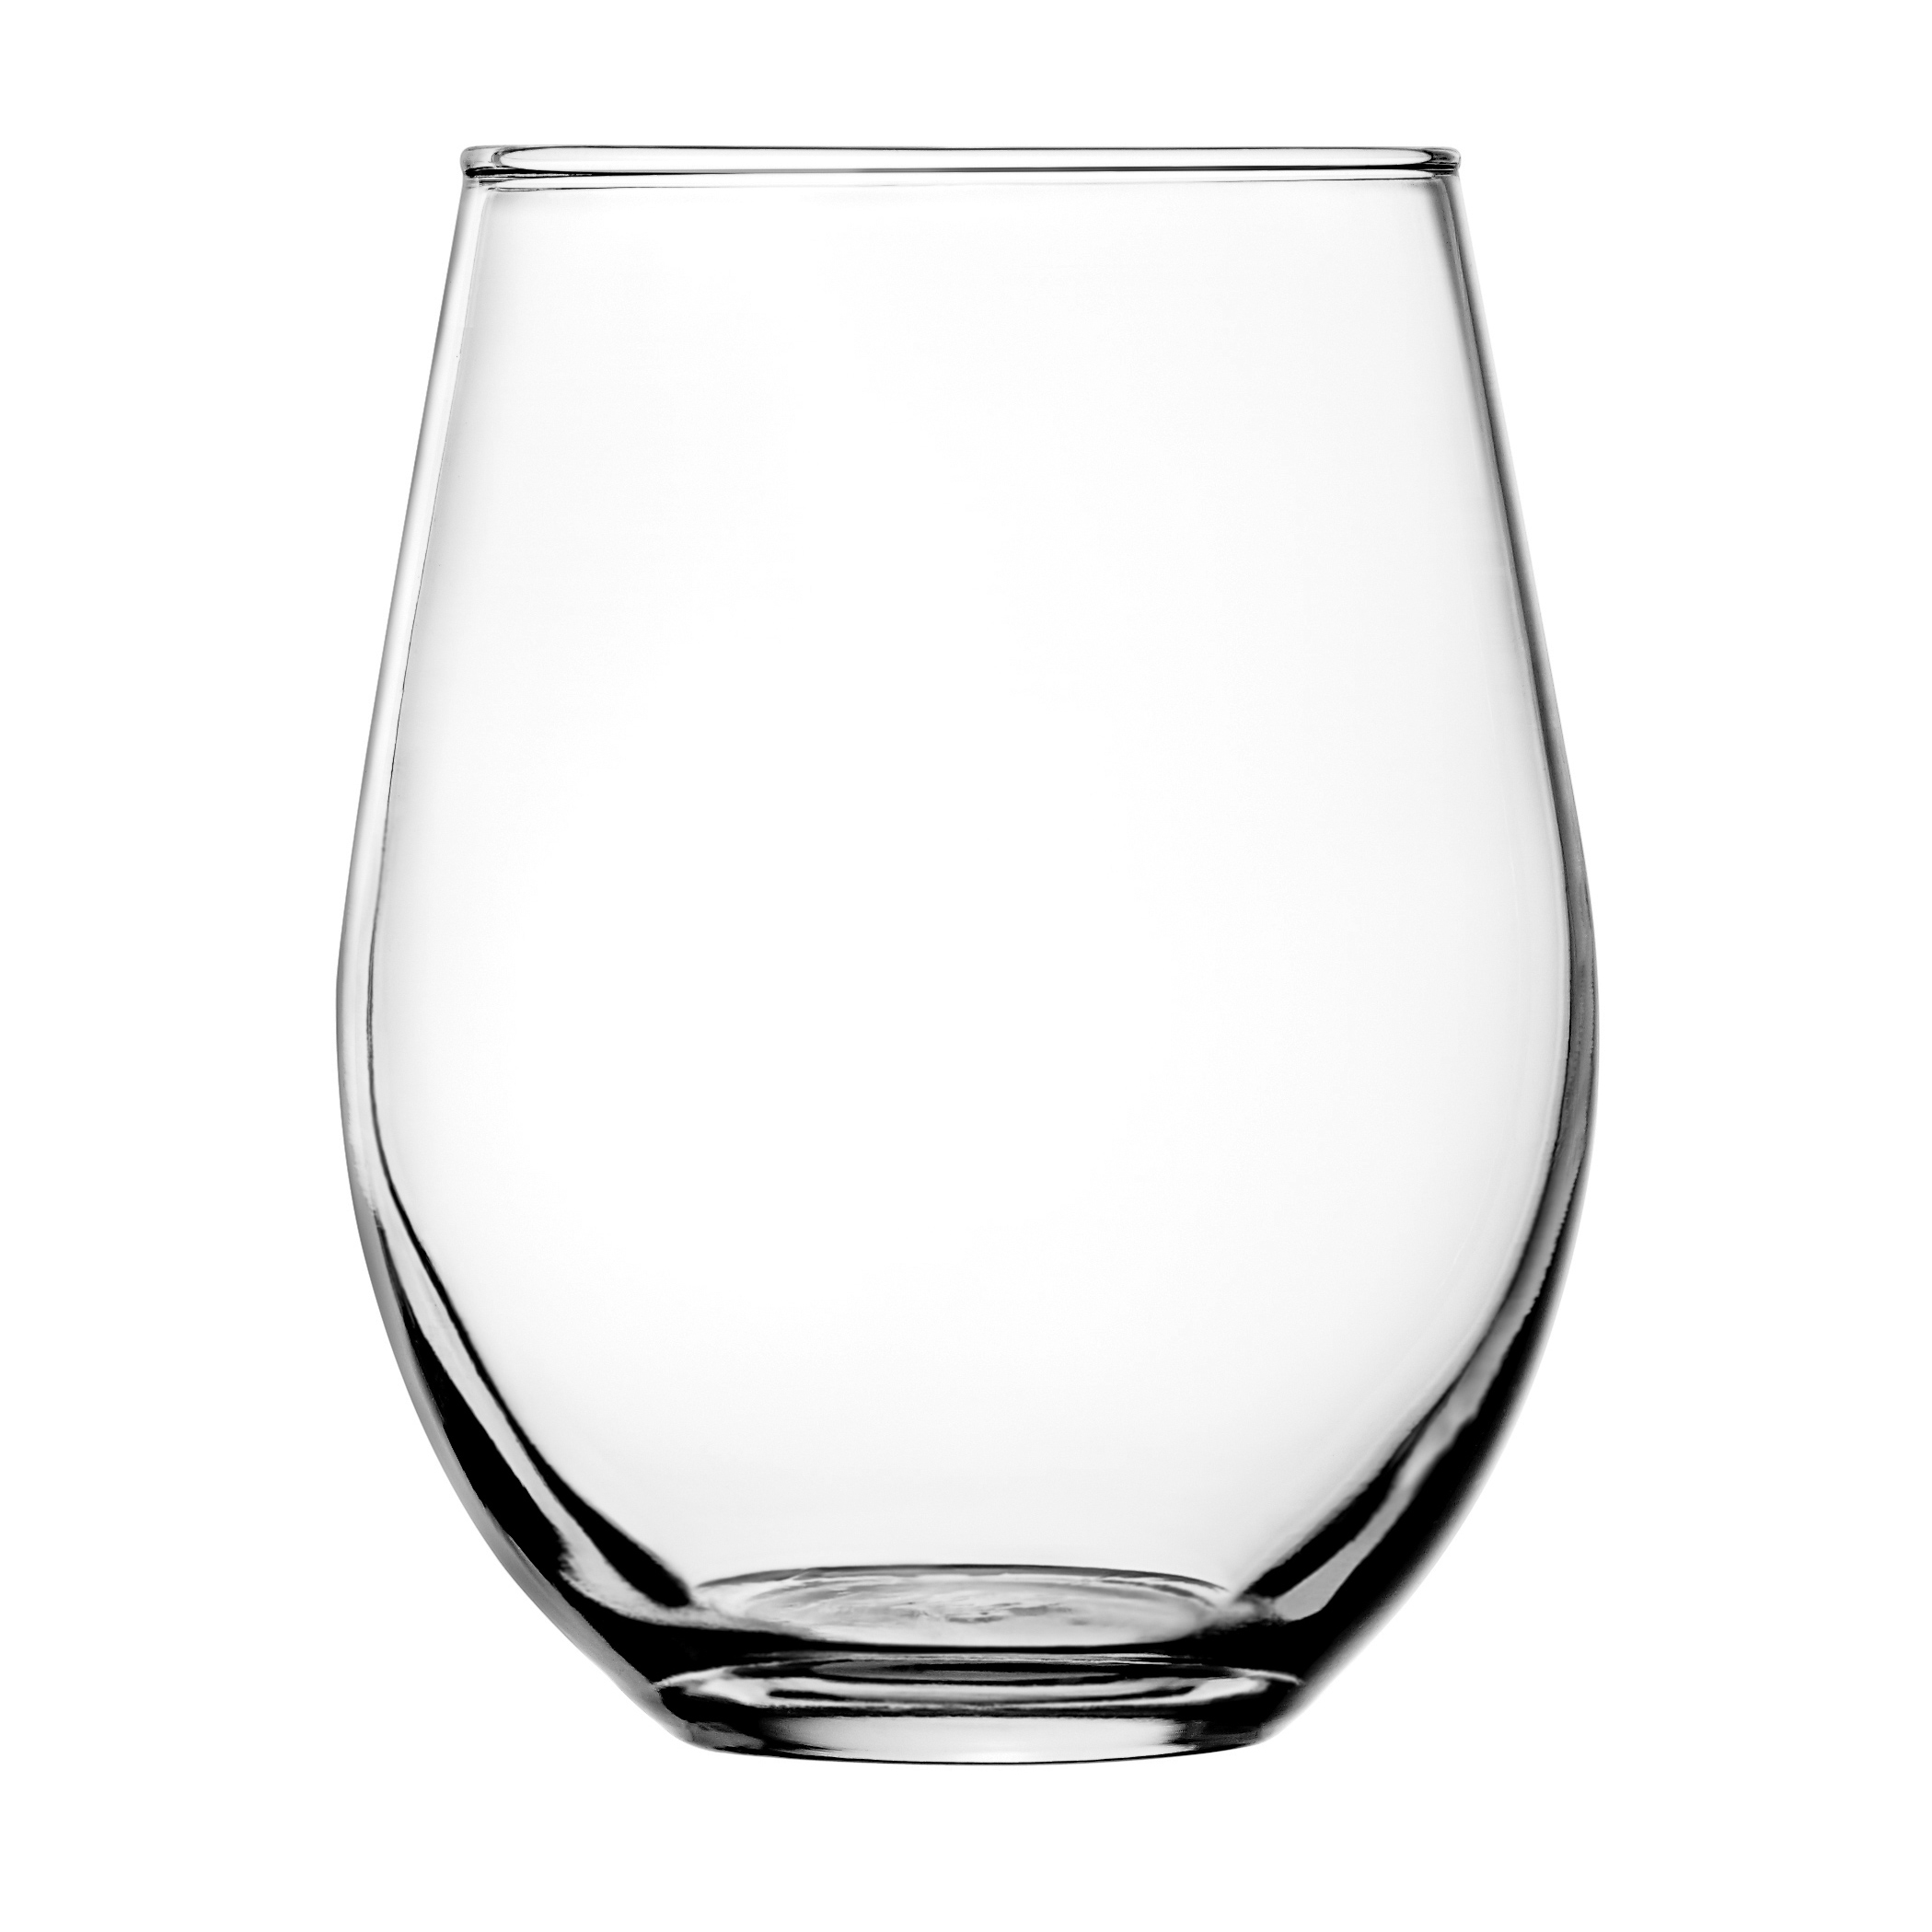 Anchor Hocking Foodservice 95142 glass, wine